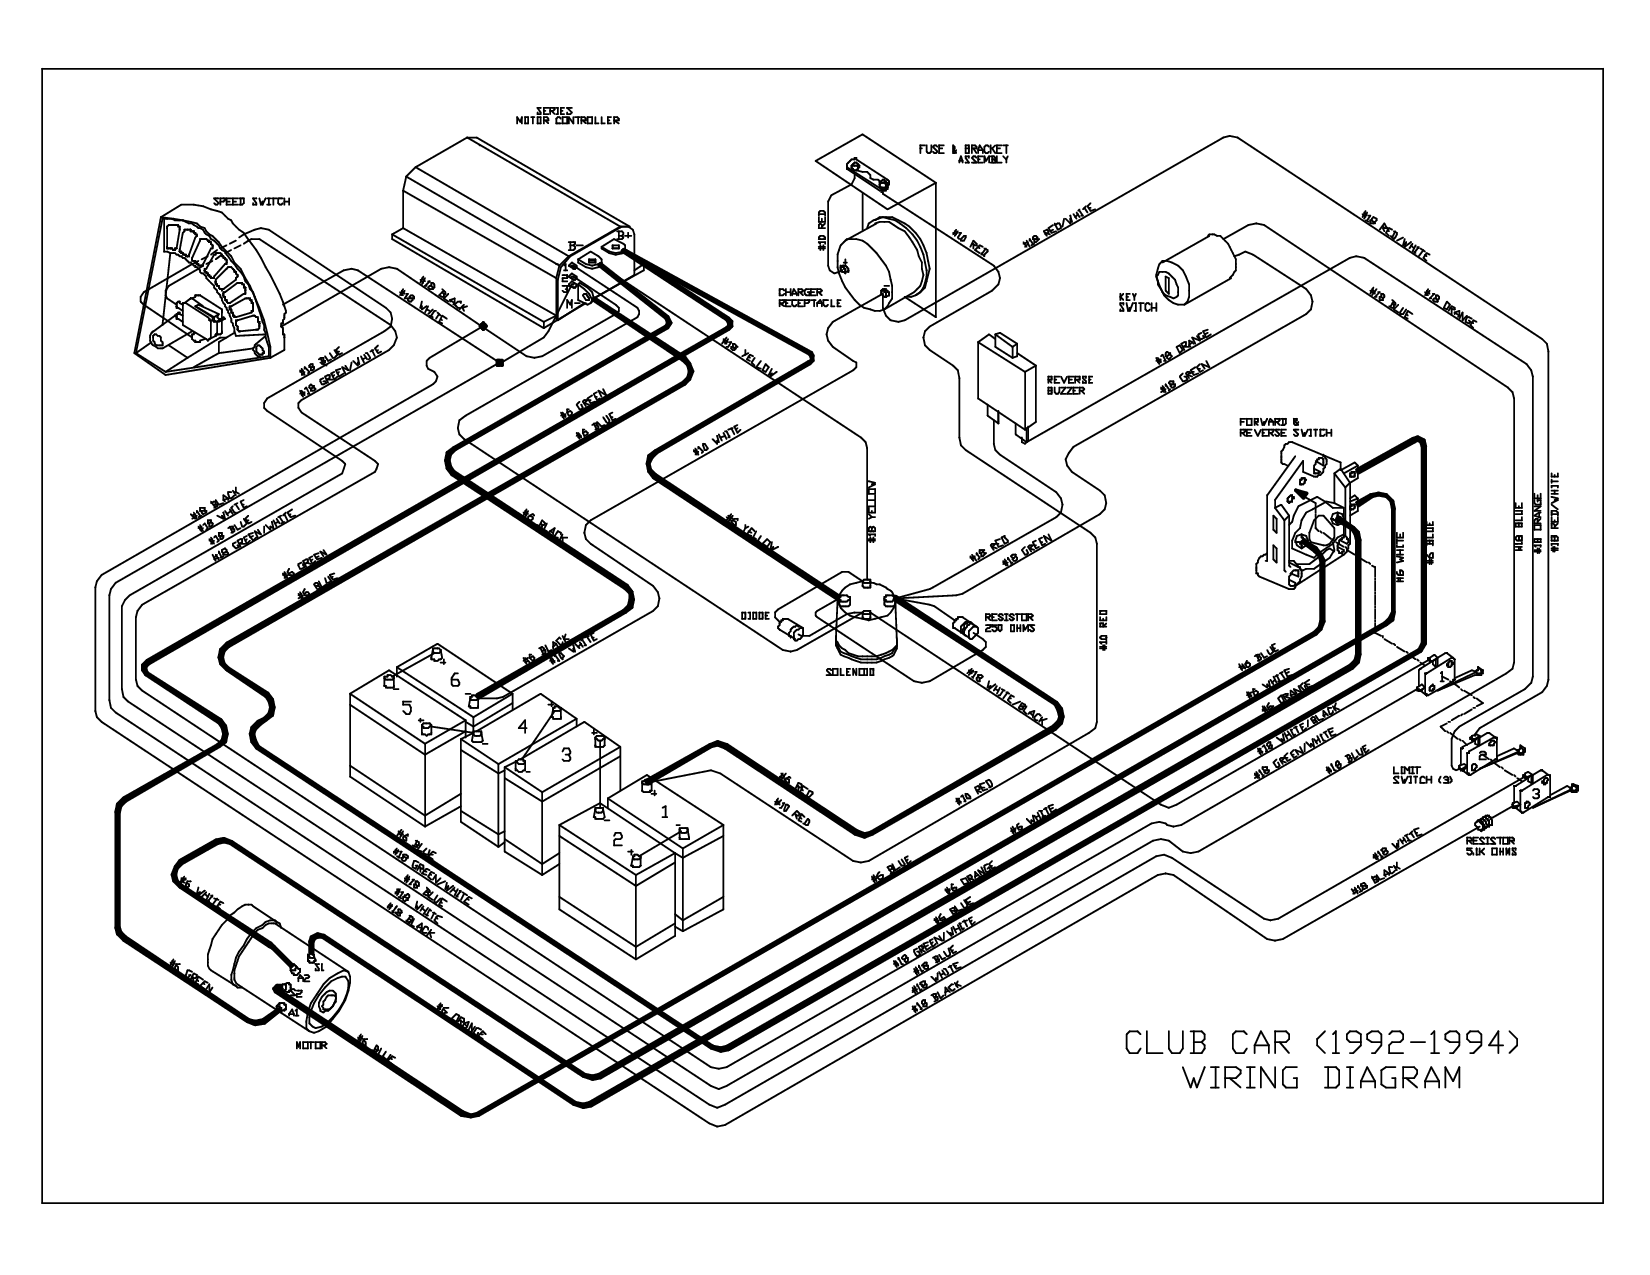 1995 club car wiring diagram club car 1992 1994 wiring diagram